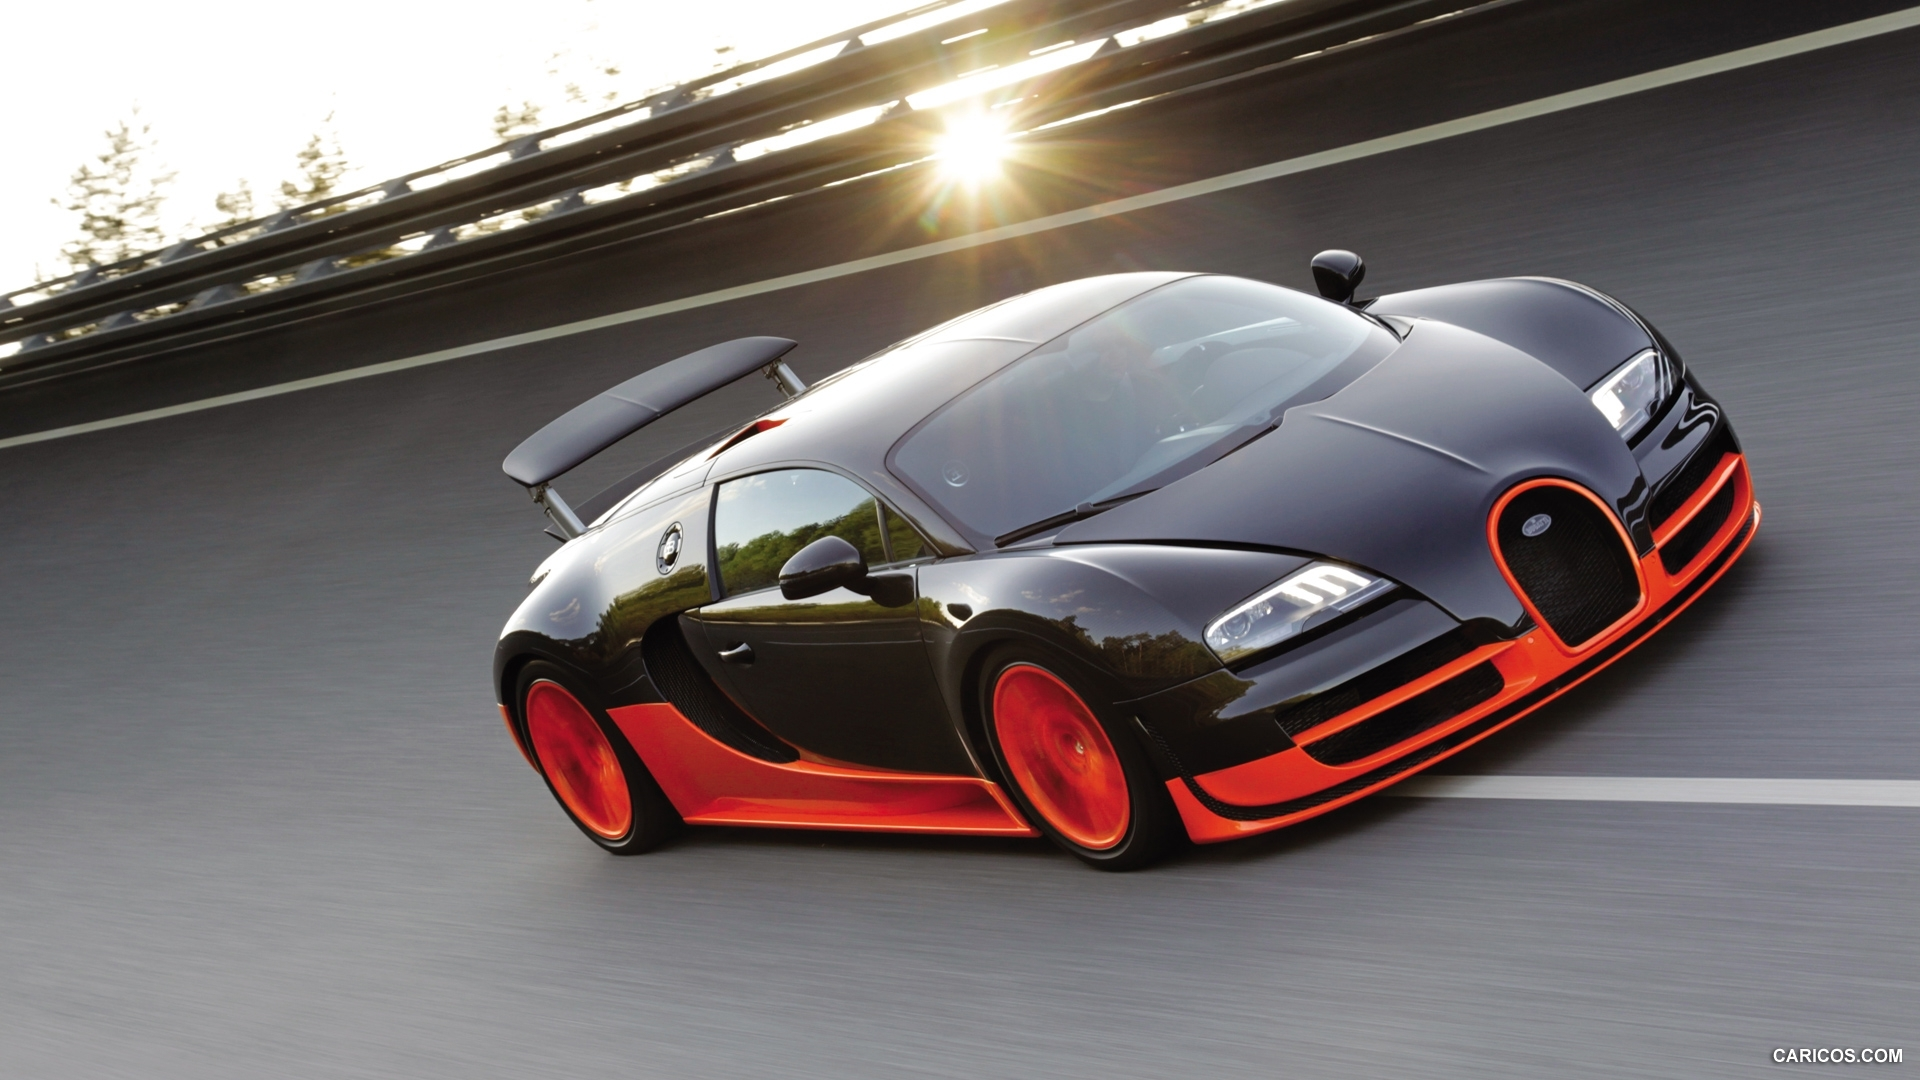 10 Best Bugatti Veyron Super Sport Wallpaper FULL HD 1080p For PC Background